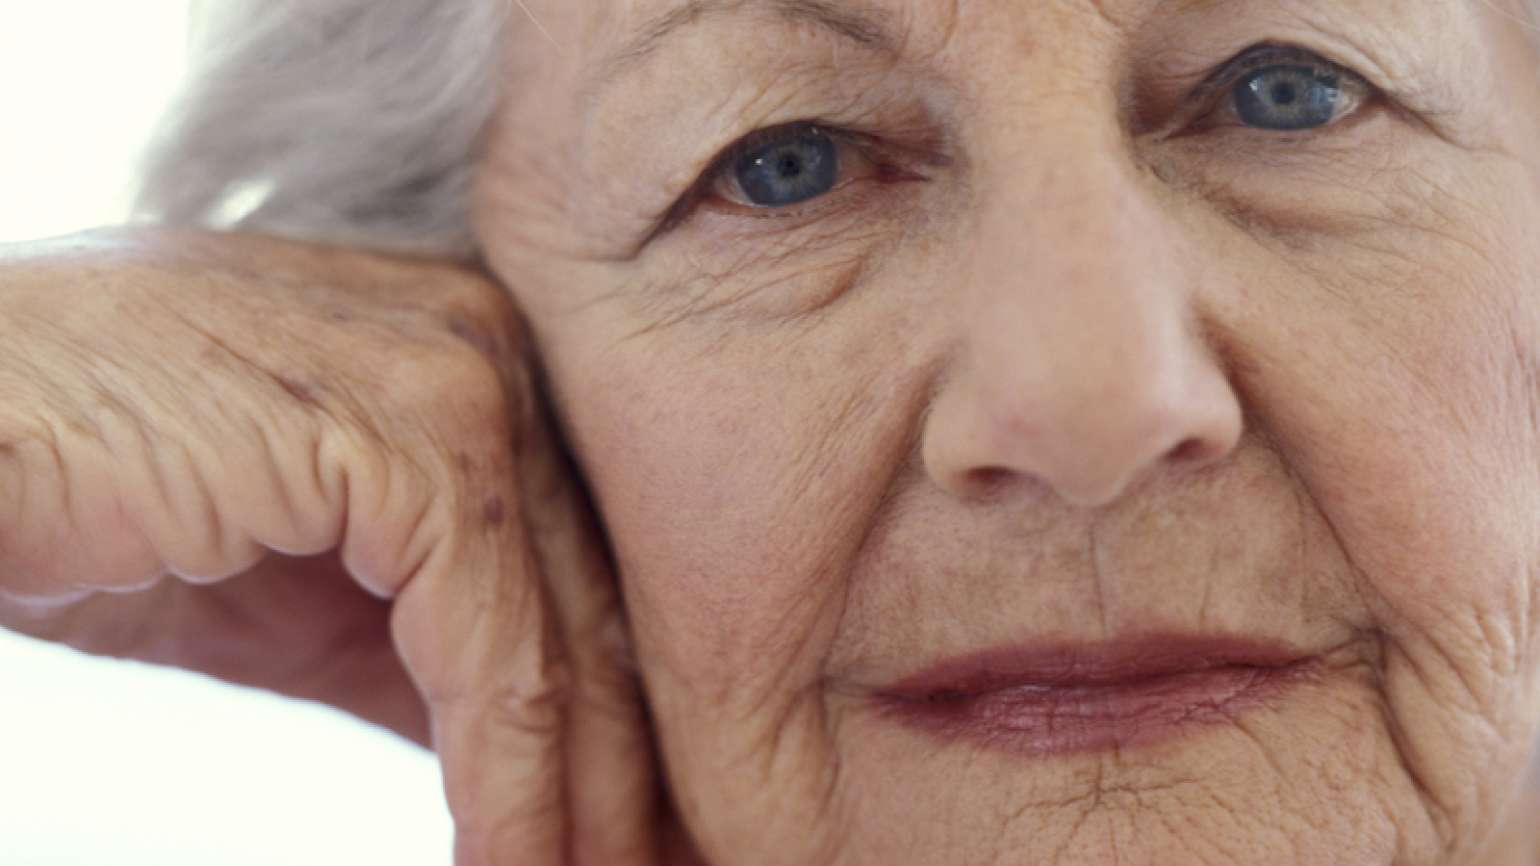 Elderly woman's face. Photo by Pixland, Thinkstock.